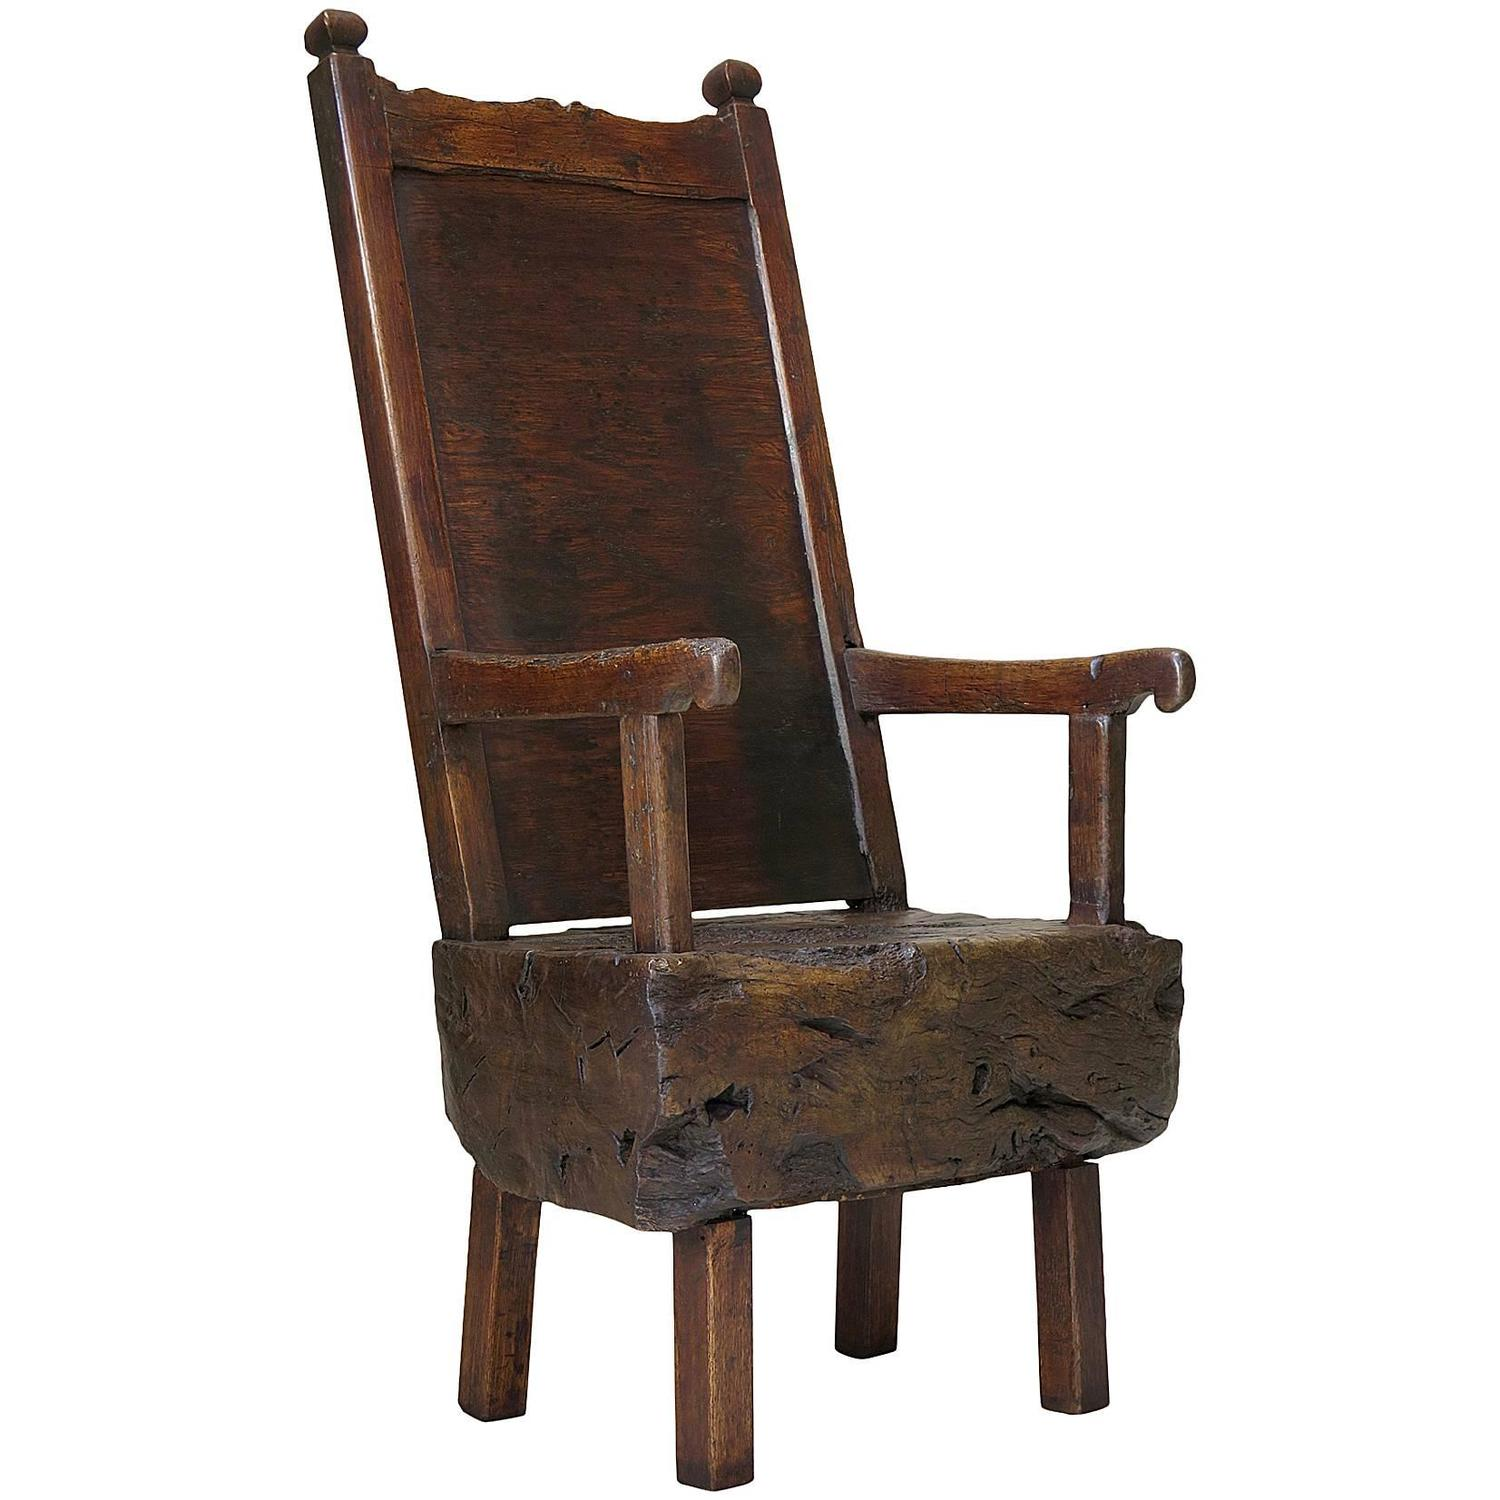 Primitive Chair France Circa 15th Century For Sale At 1stdibs